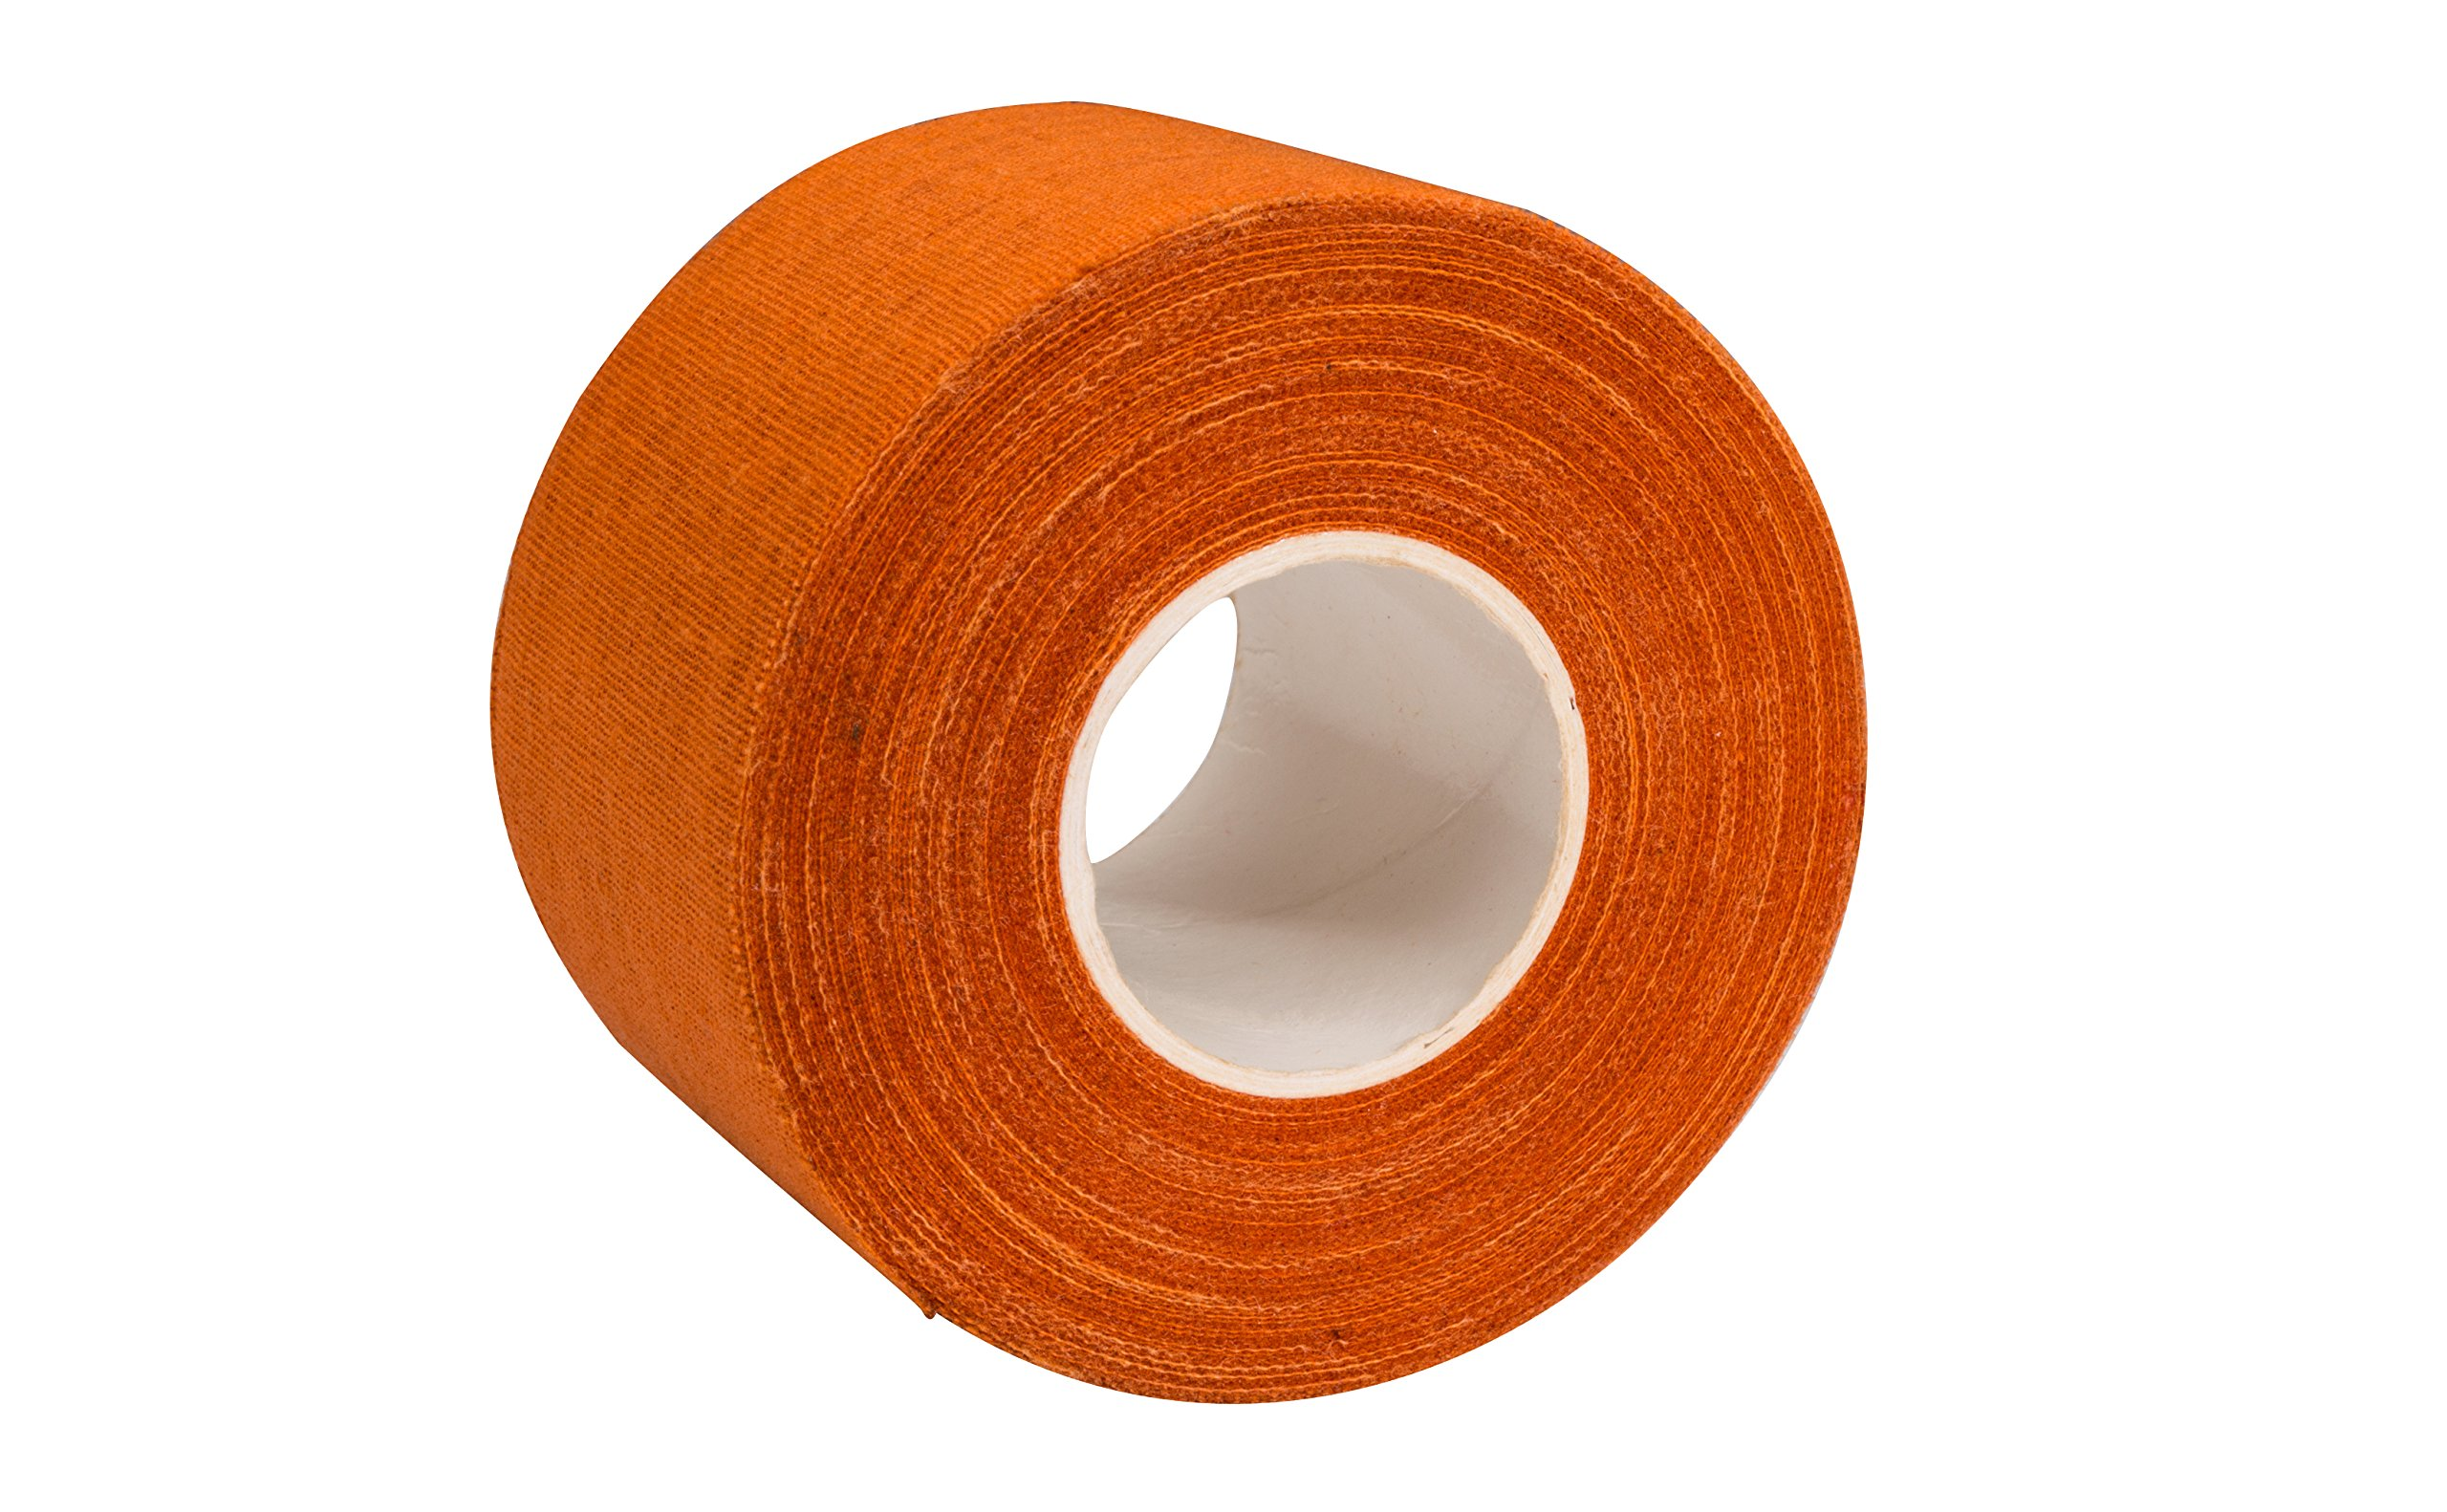 Mpowered Baseball Professional Baseball Bat Tape (32 Rolls), Orange by M^POWERED BASEBALL